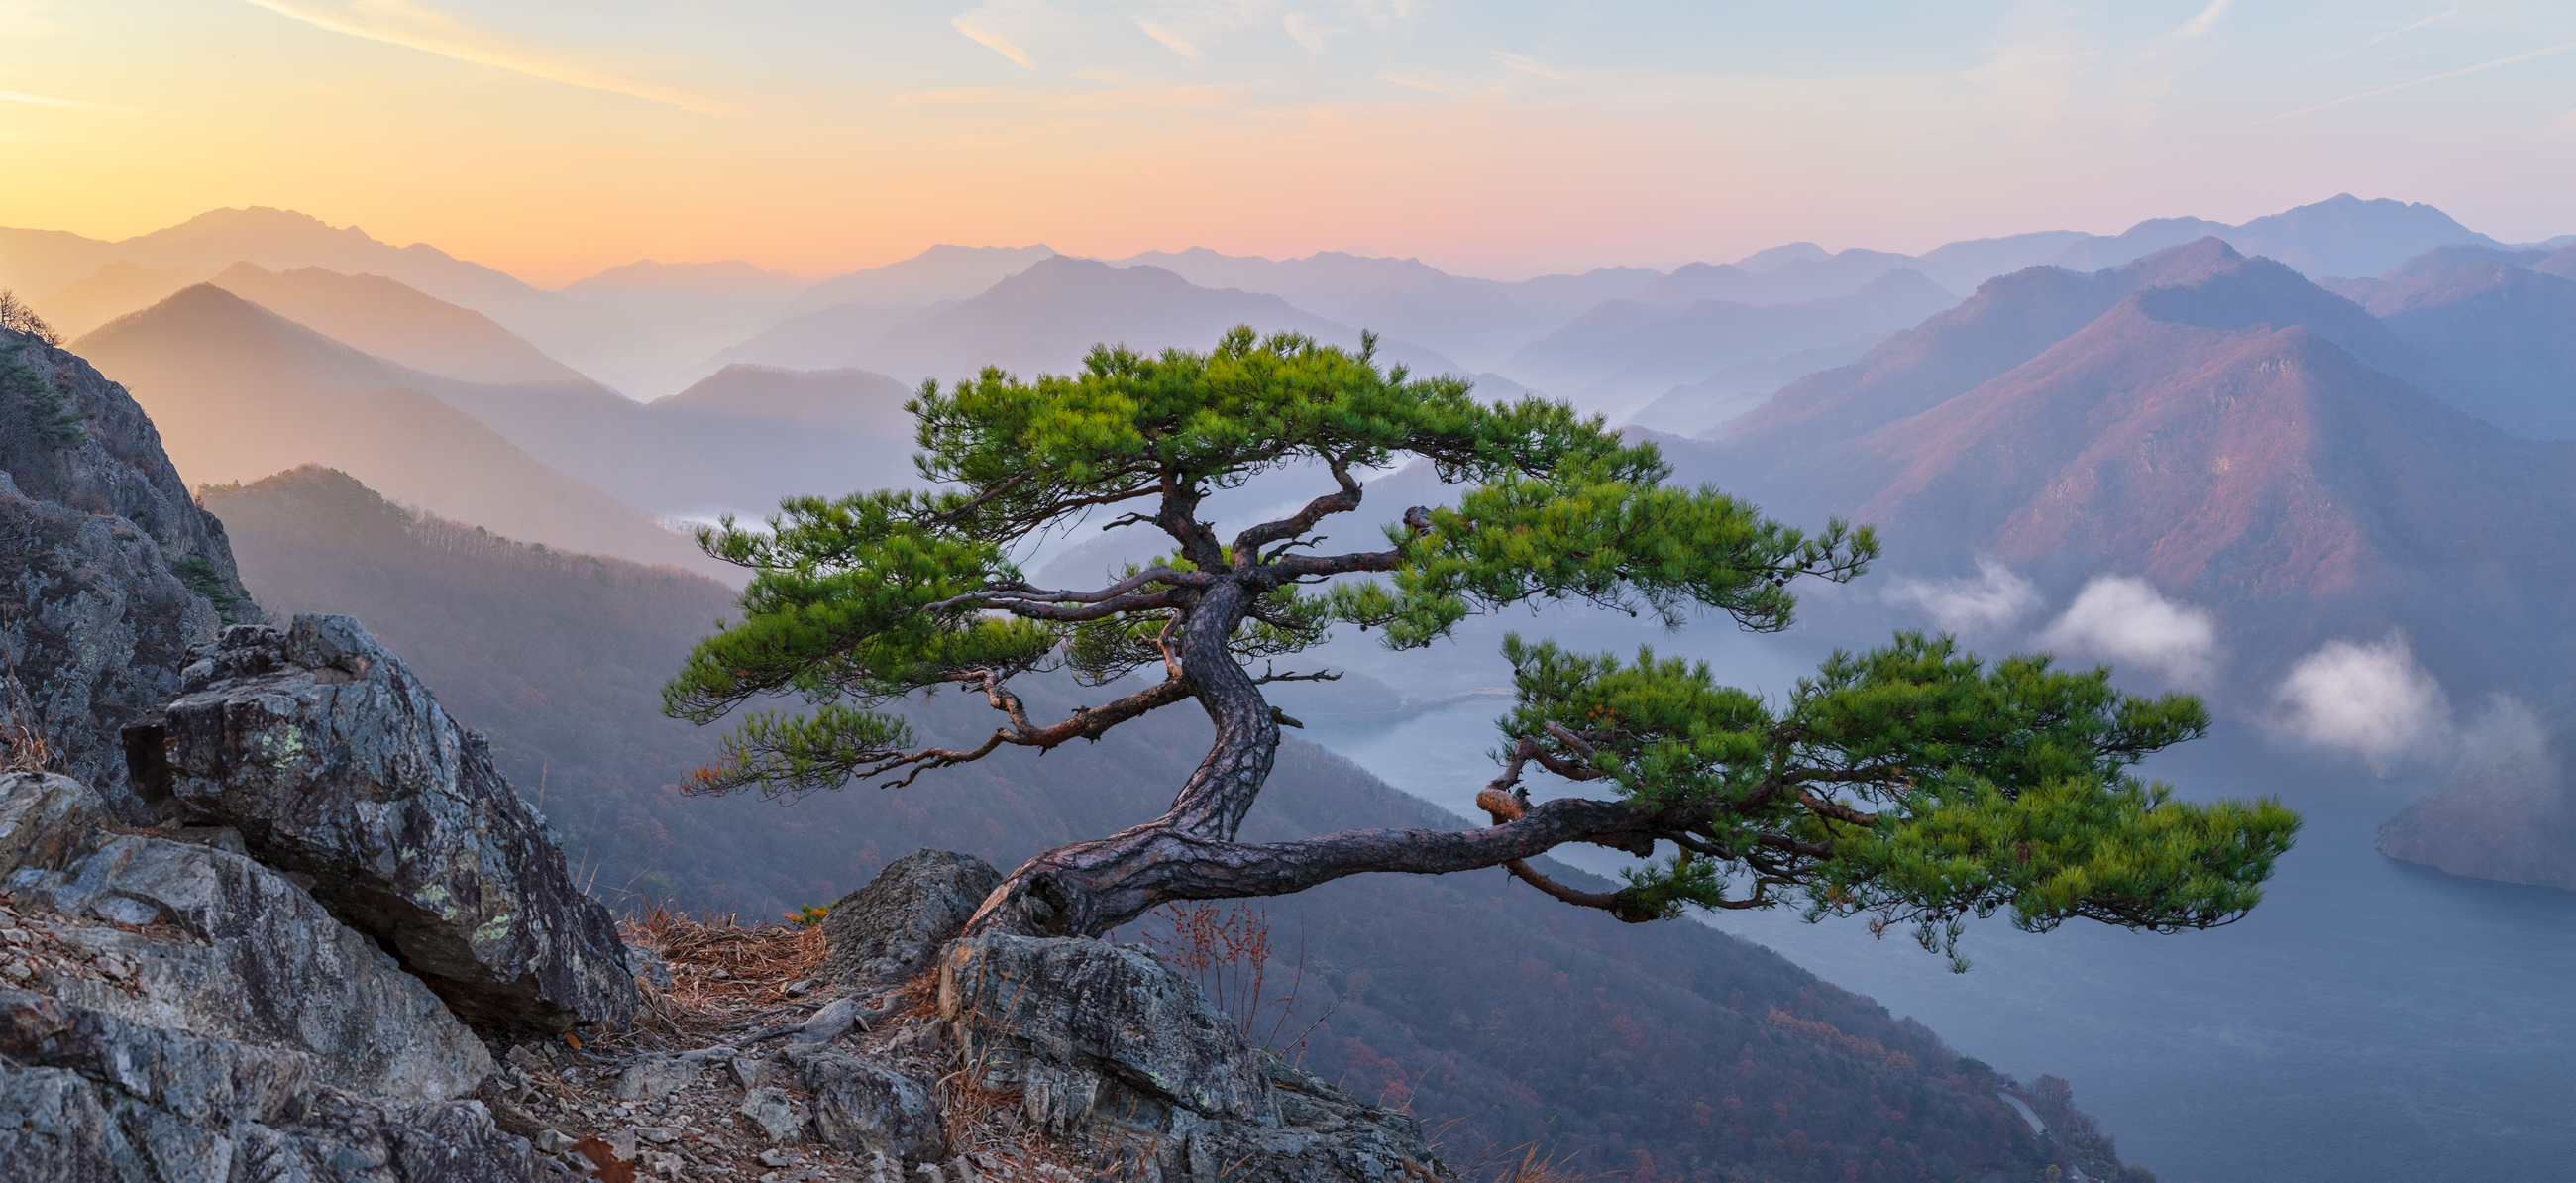 Trees Growing Out Of Edge Of Rock Hd Wallpaper Background Image